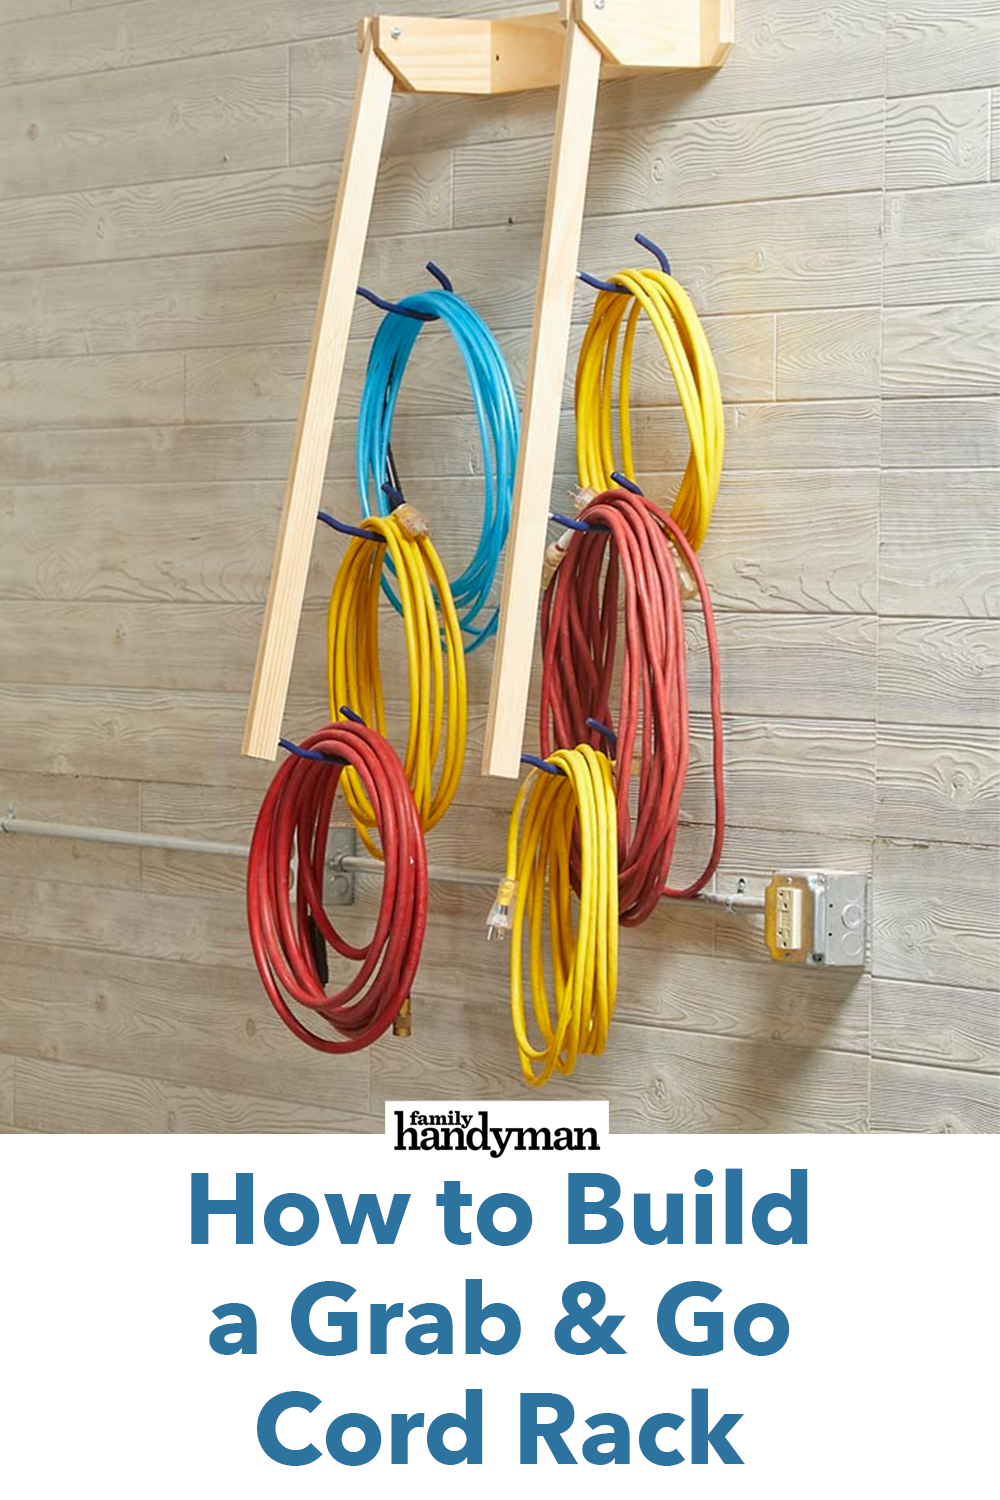 How to Build a Grab & Go Cord Rack How to Build a